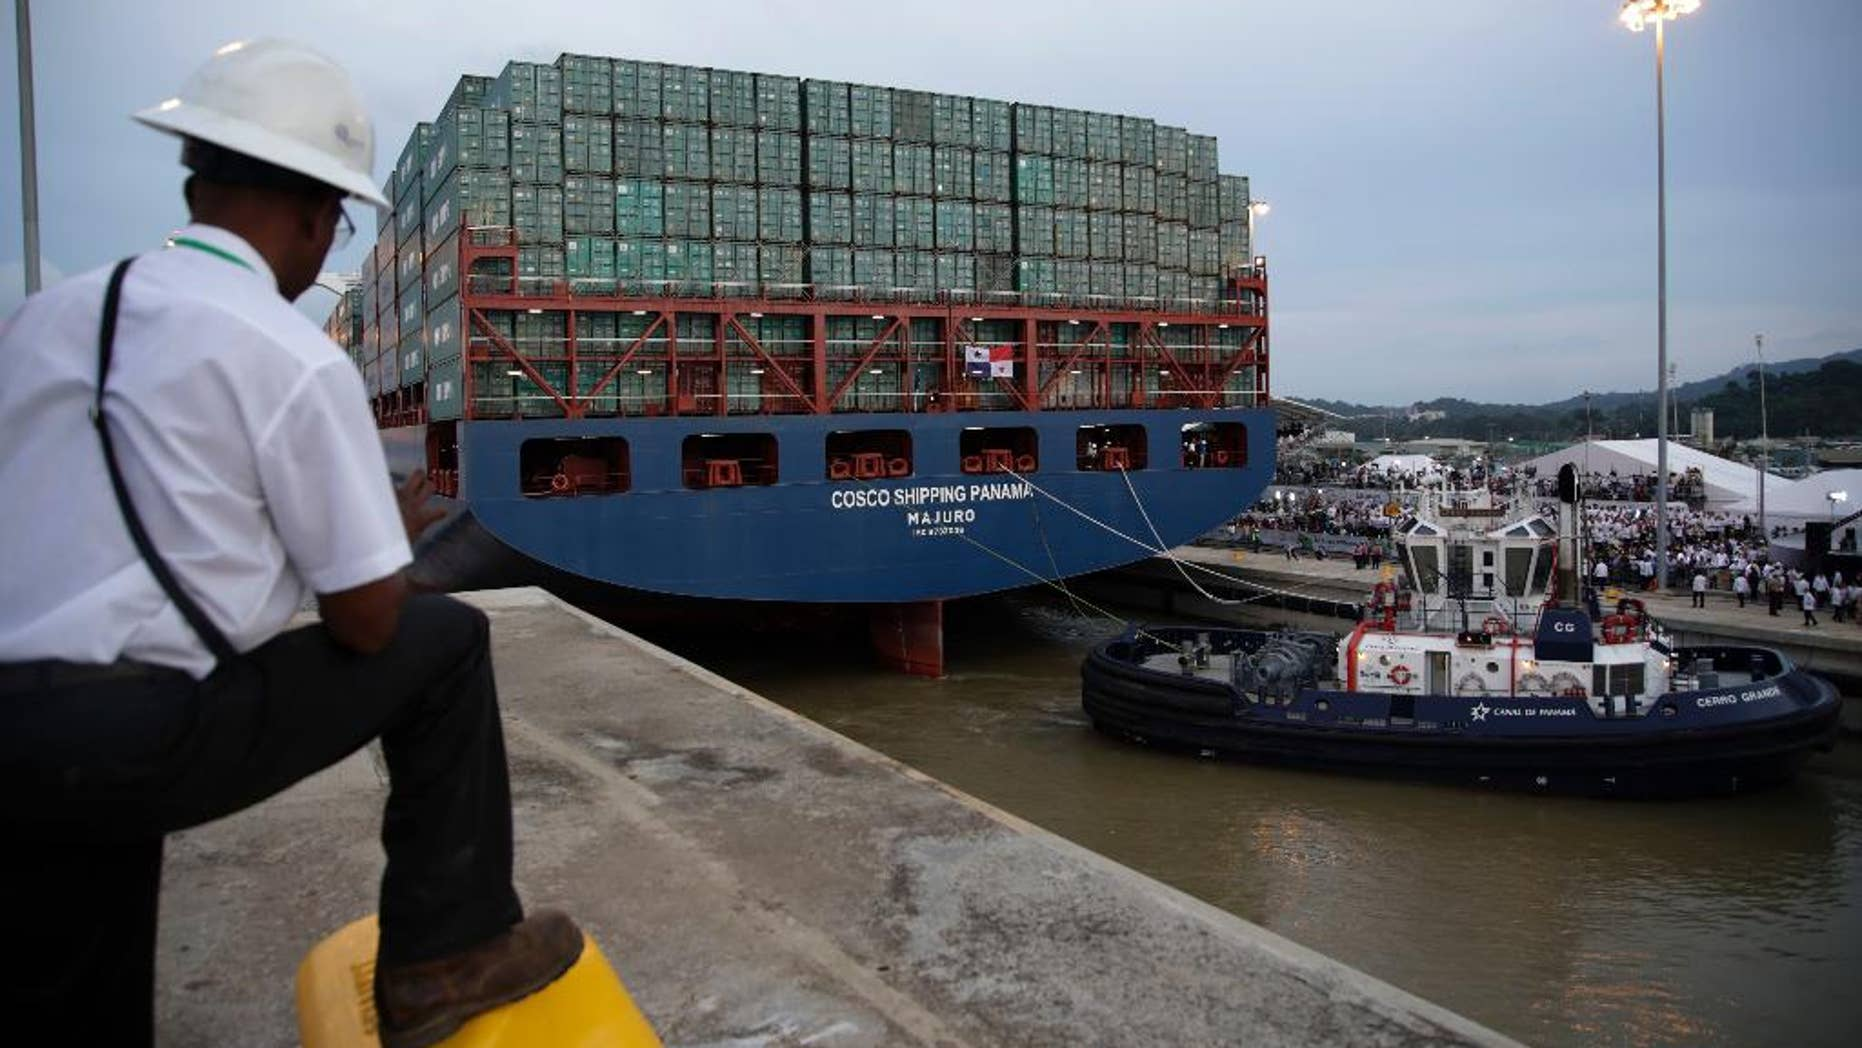 FILE - In this June 26, 2016, file photo, a worker watches as the COSCO Shipping Panama cargo ship leaves the new Cocoli Locks, part of the new Panama Canal expansion project, in Panama City. Canal administrator Jorge Quijano said Tuesday, July 26, that a Chinese container ship brushed with the canal's new wider locks due to bad weather and the ship not lining up correctly. (AP Photo/Tito Herrera, File)